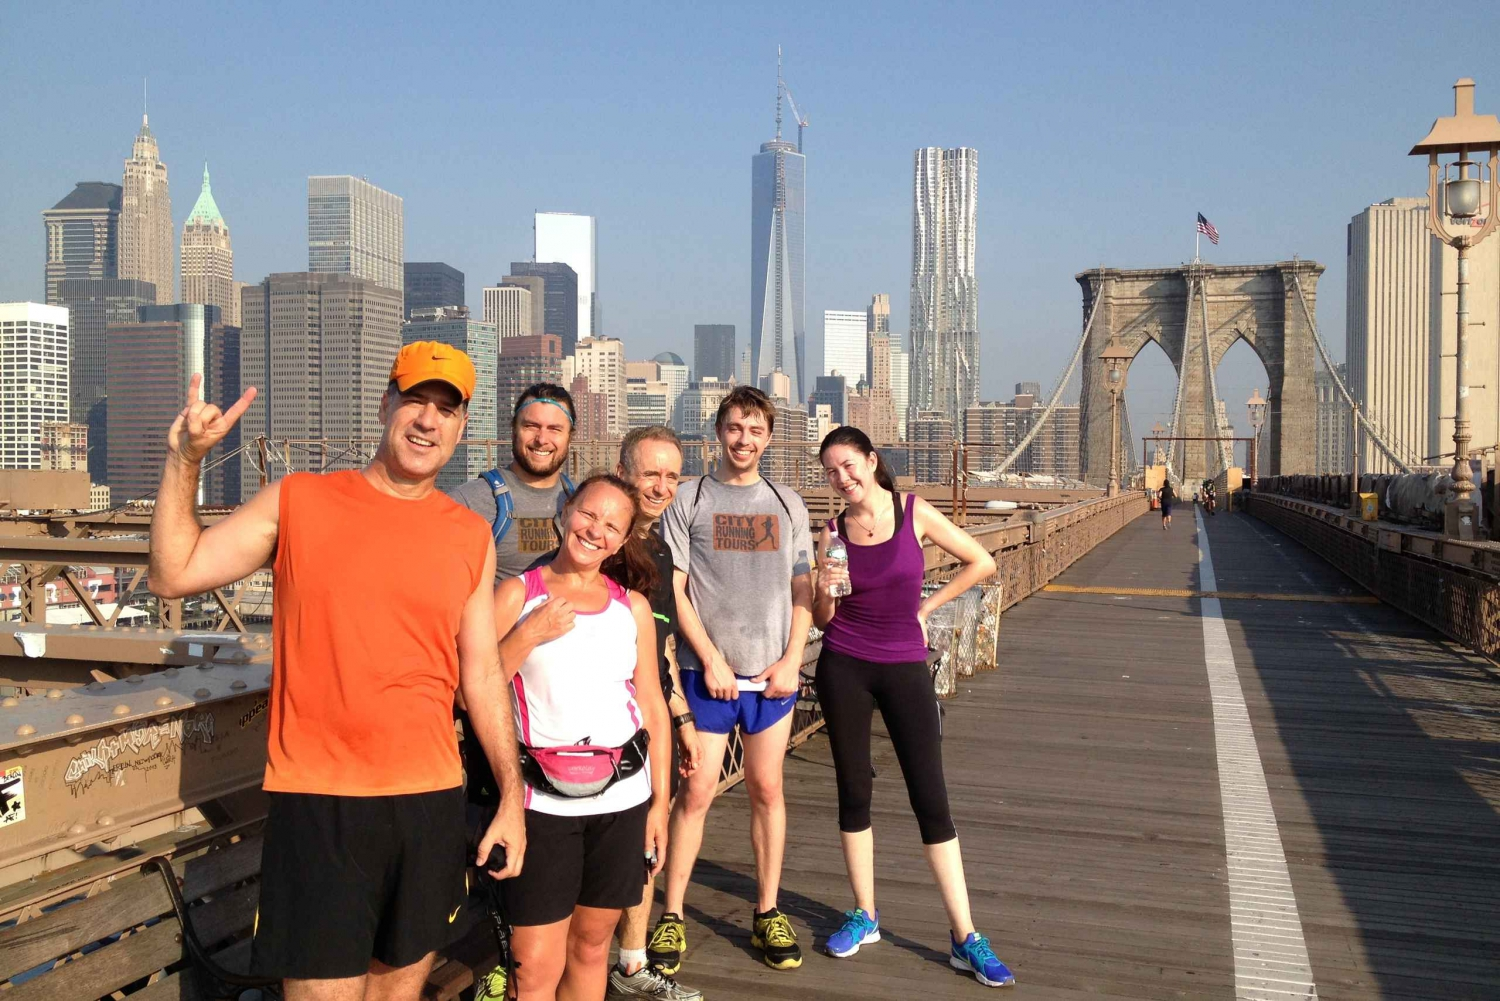 New Brooklyn Bridge City Running Tour